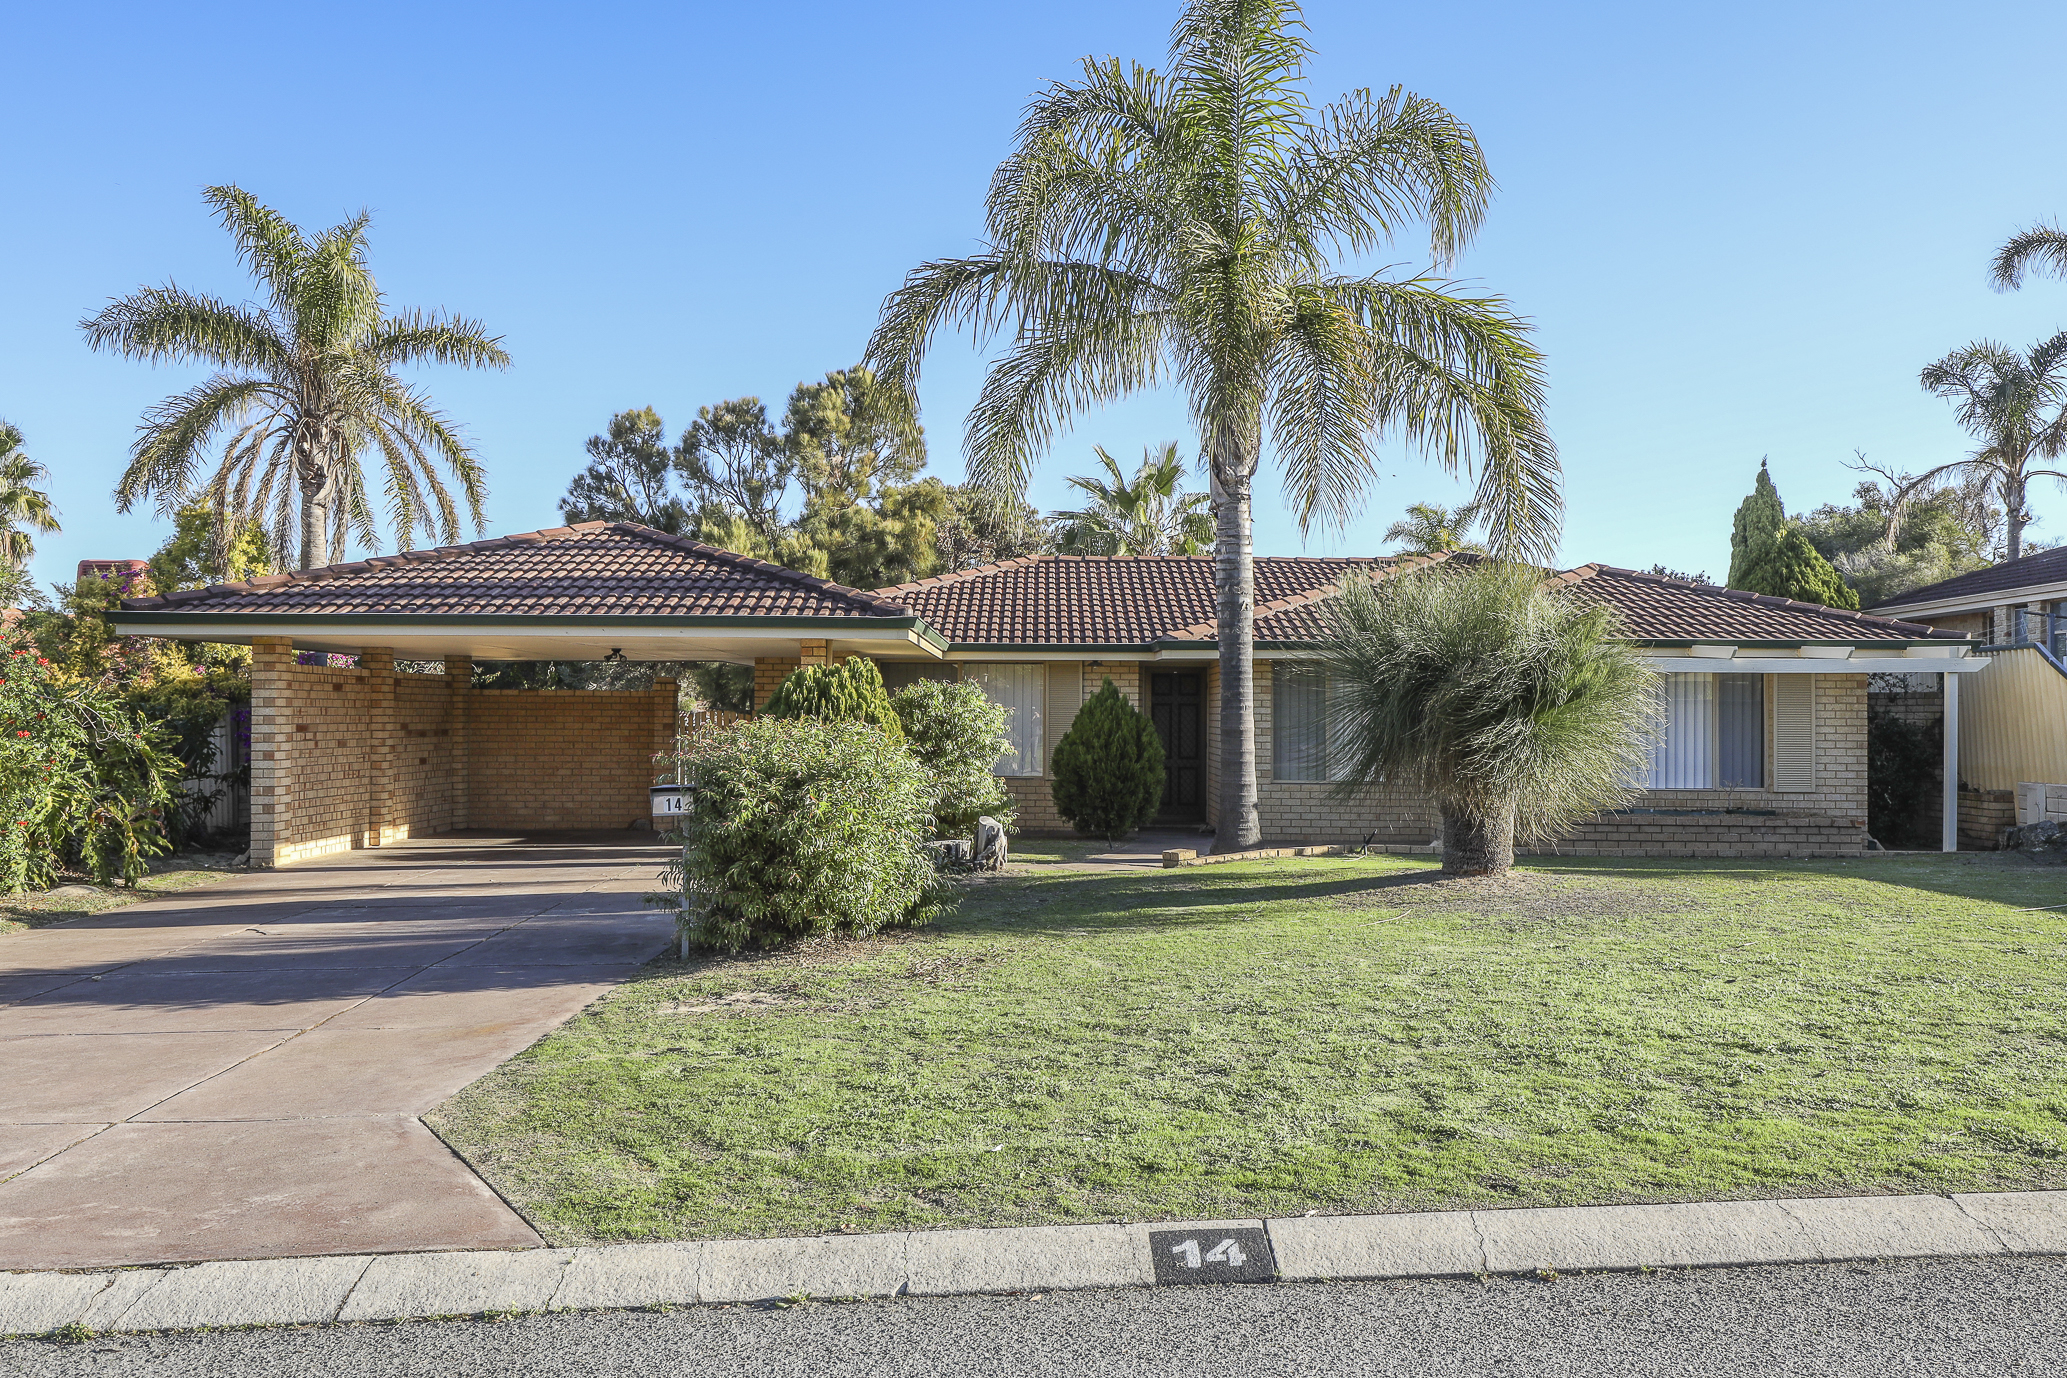 GREAT FAMILY HOME IN A GREAT LOCATION!